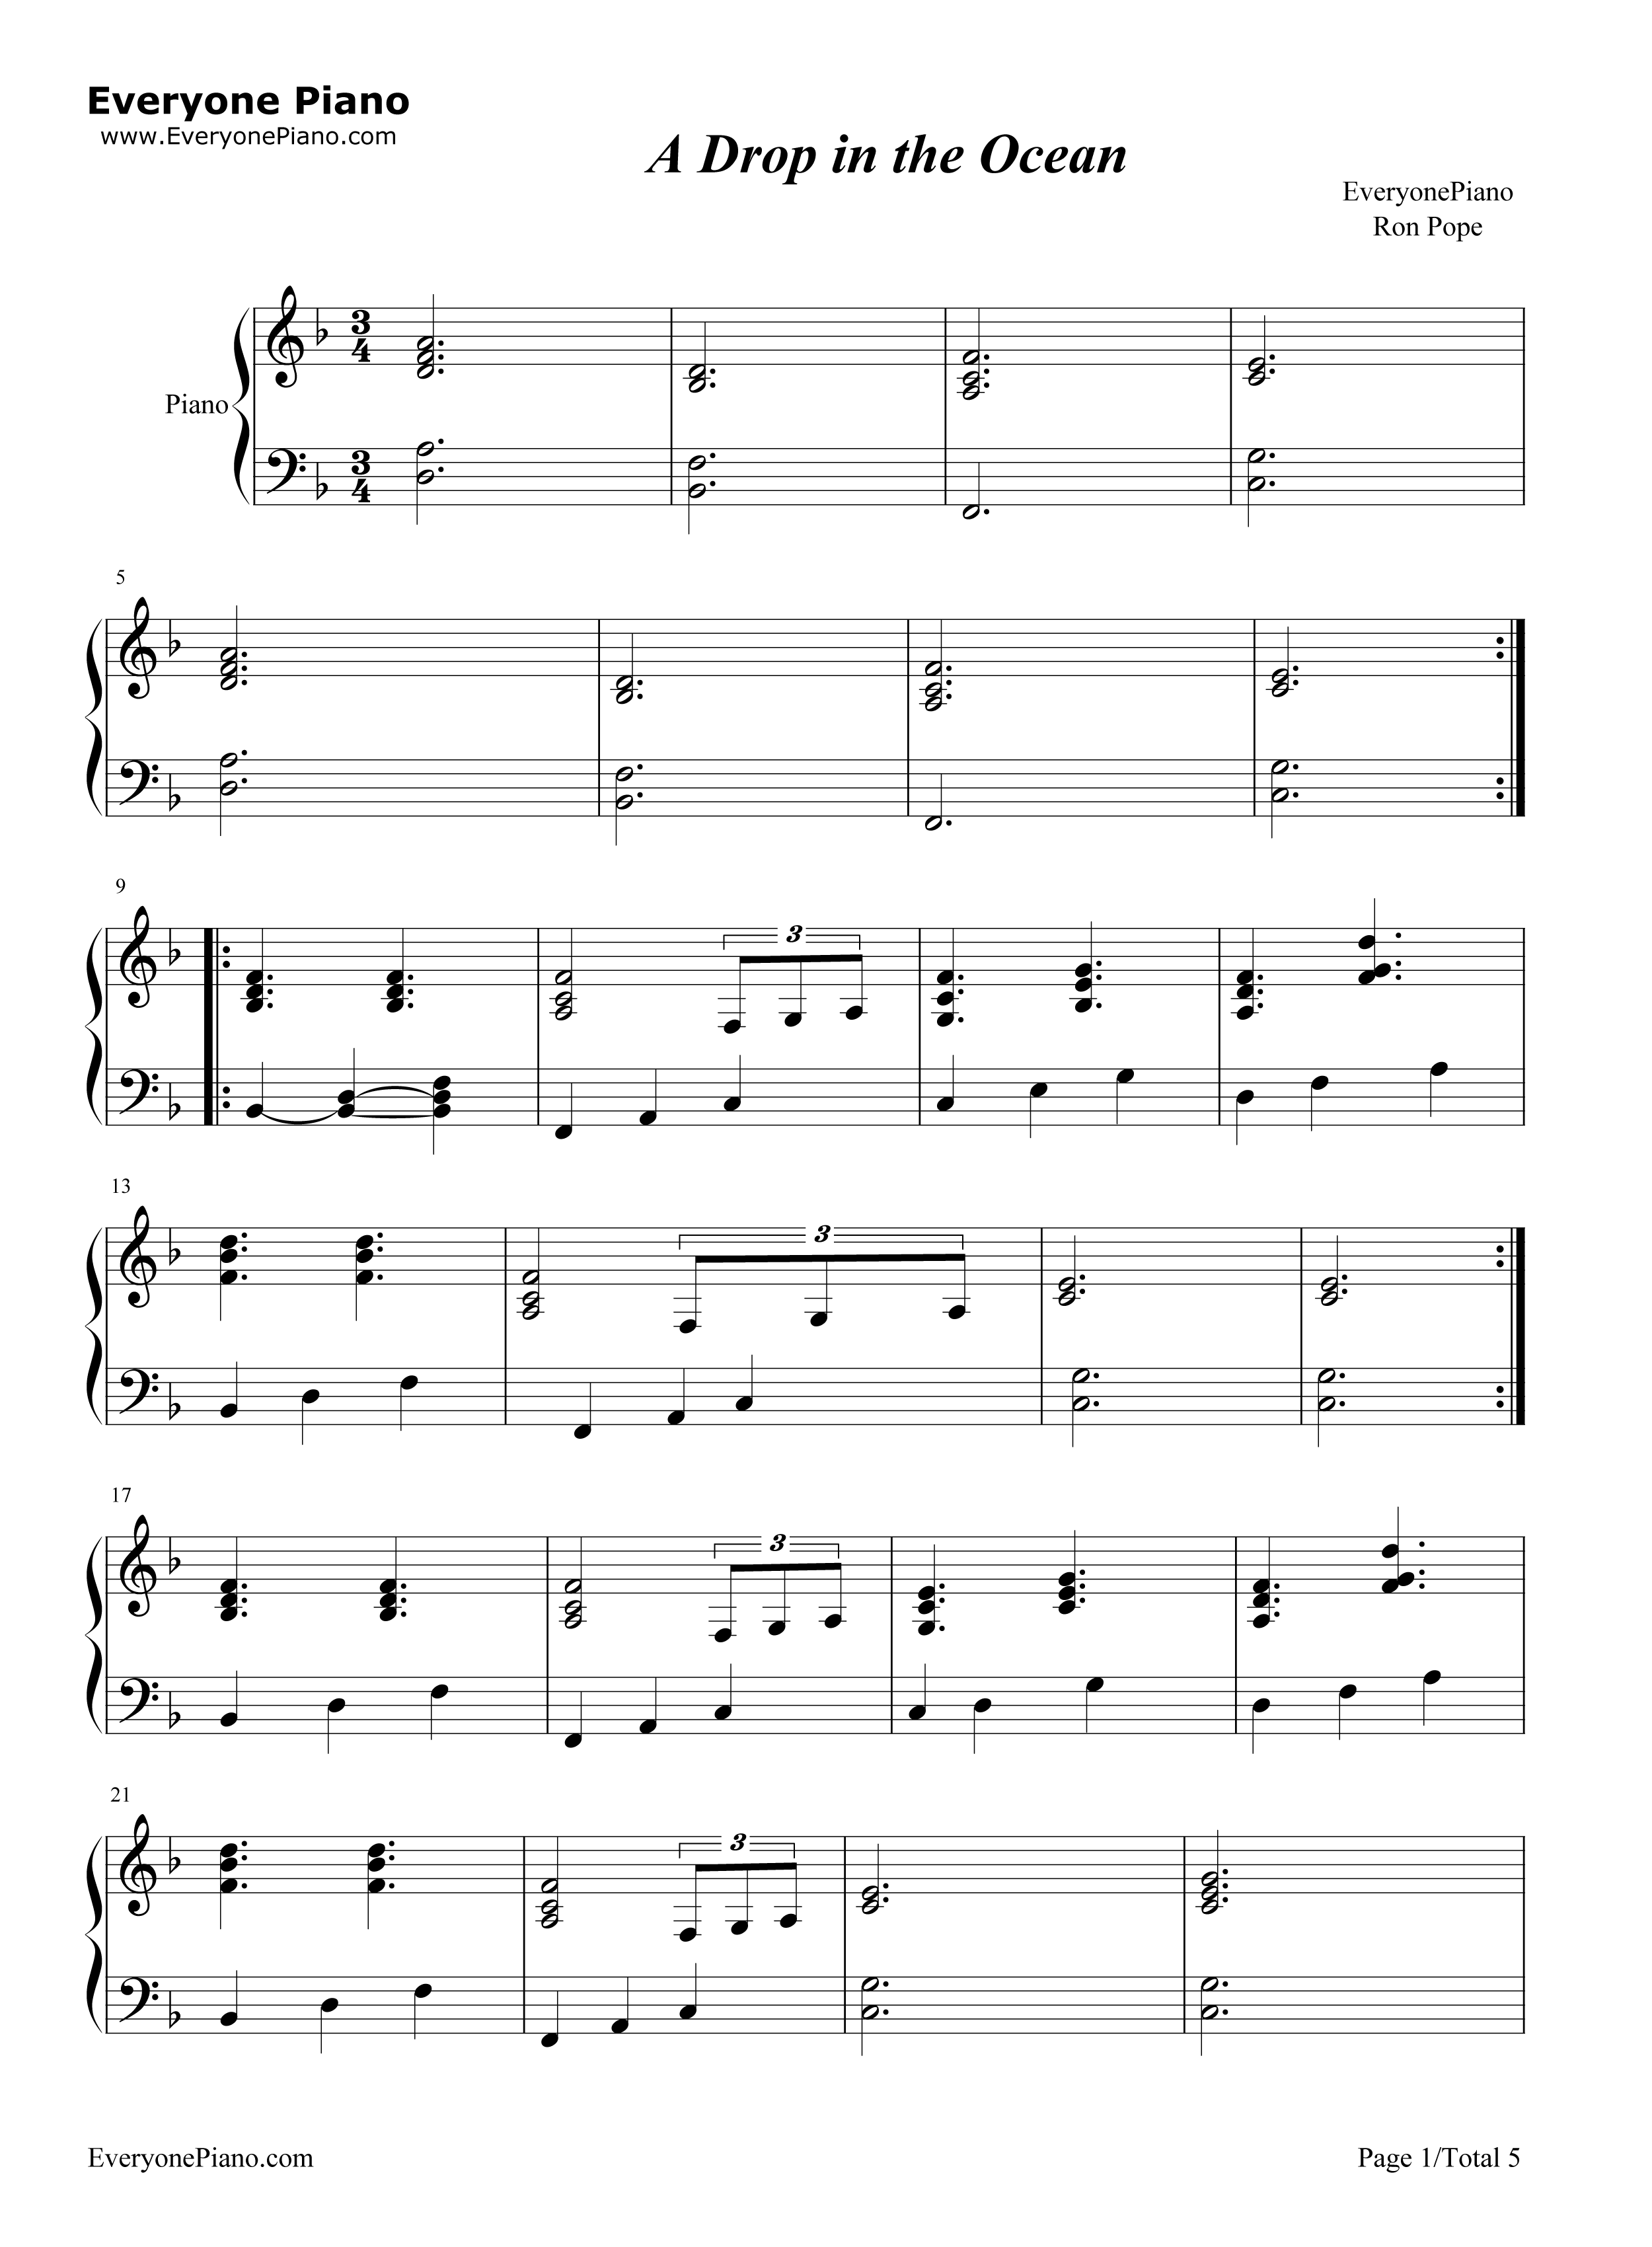 A drop in the ocean ron pope stave preview 1 free piano sheet listen now print sheet a drop in the ocean ron pope stave preview 1 hexwebz Image collections